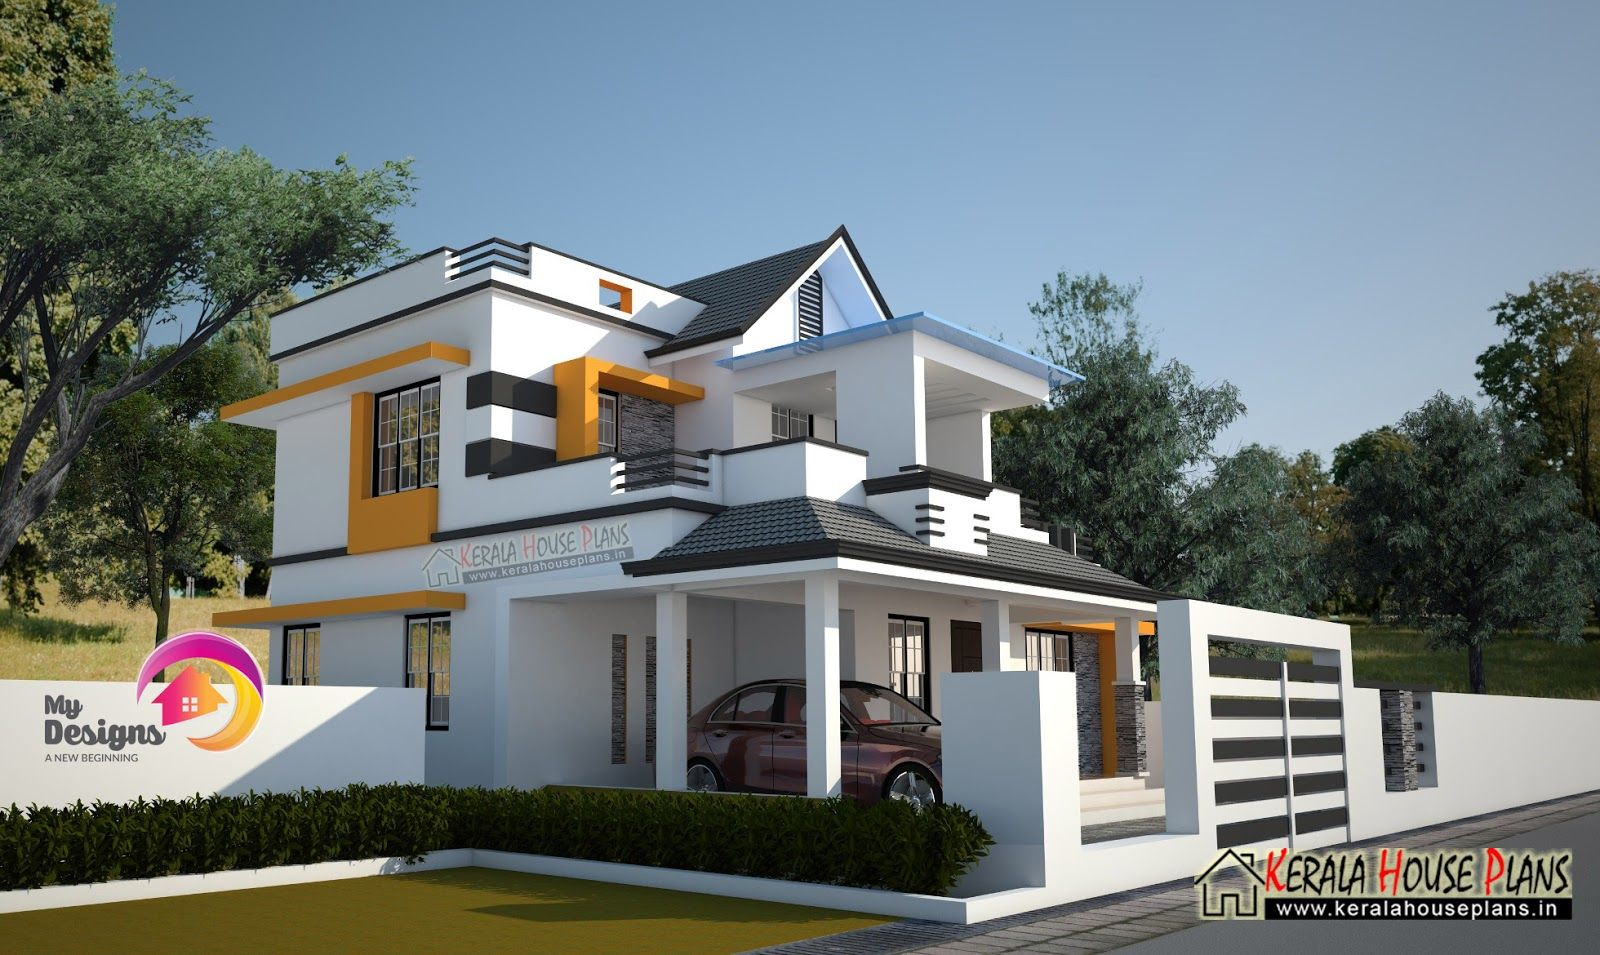 1680 sqft 3bhk house design kerala house plans designs floor rh pinterest com